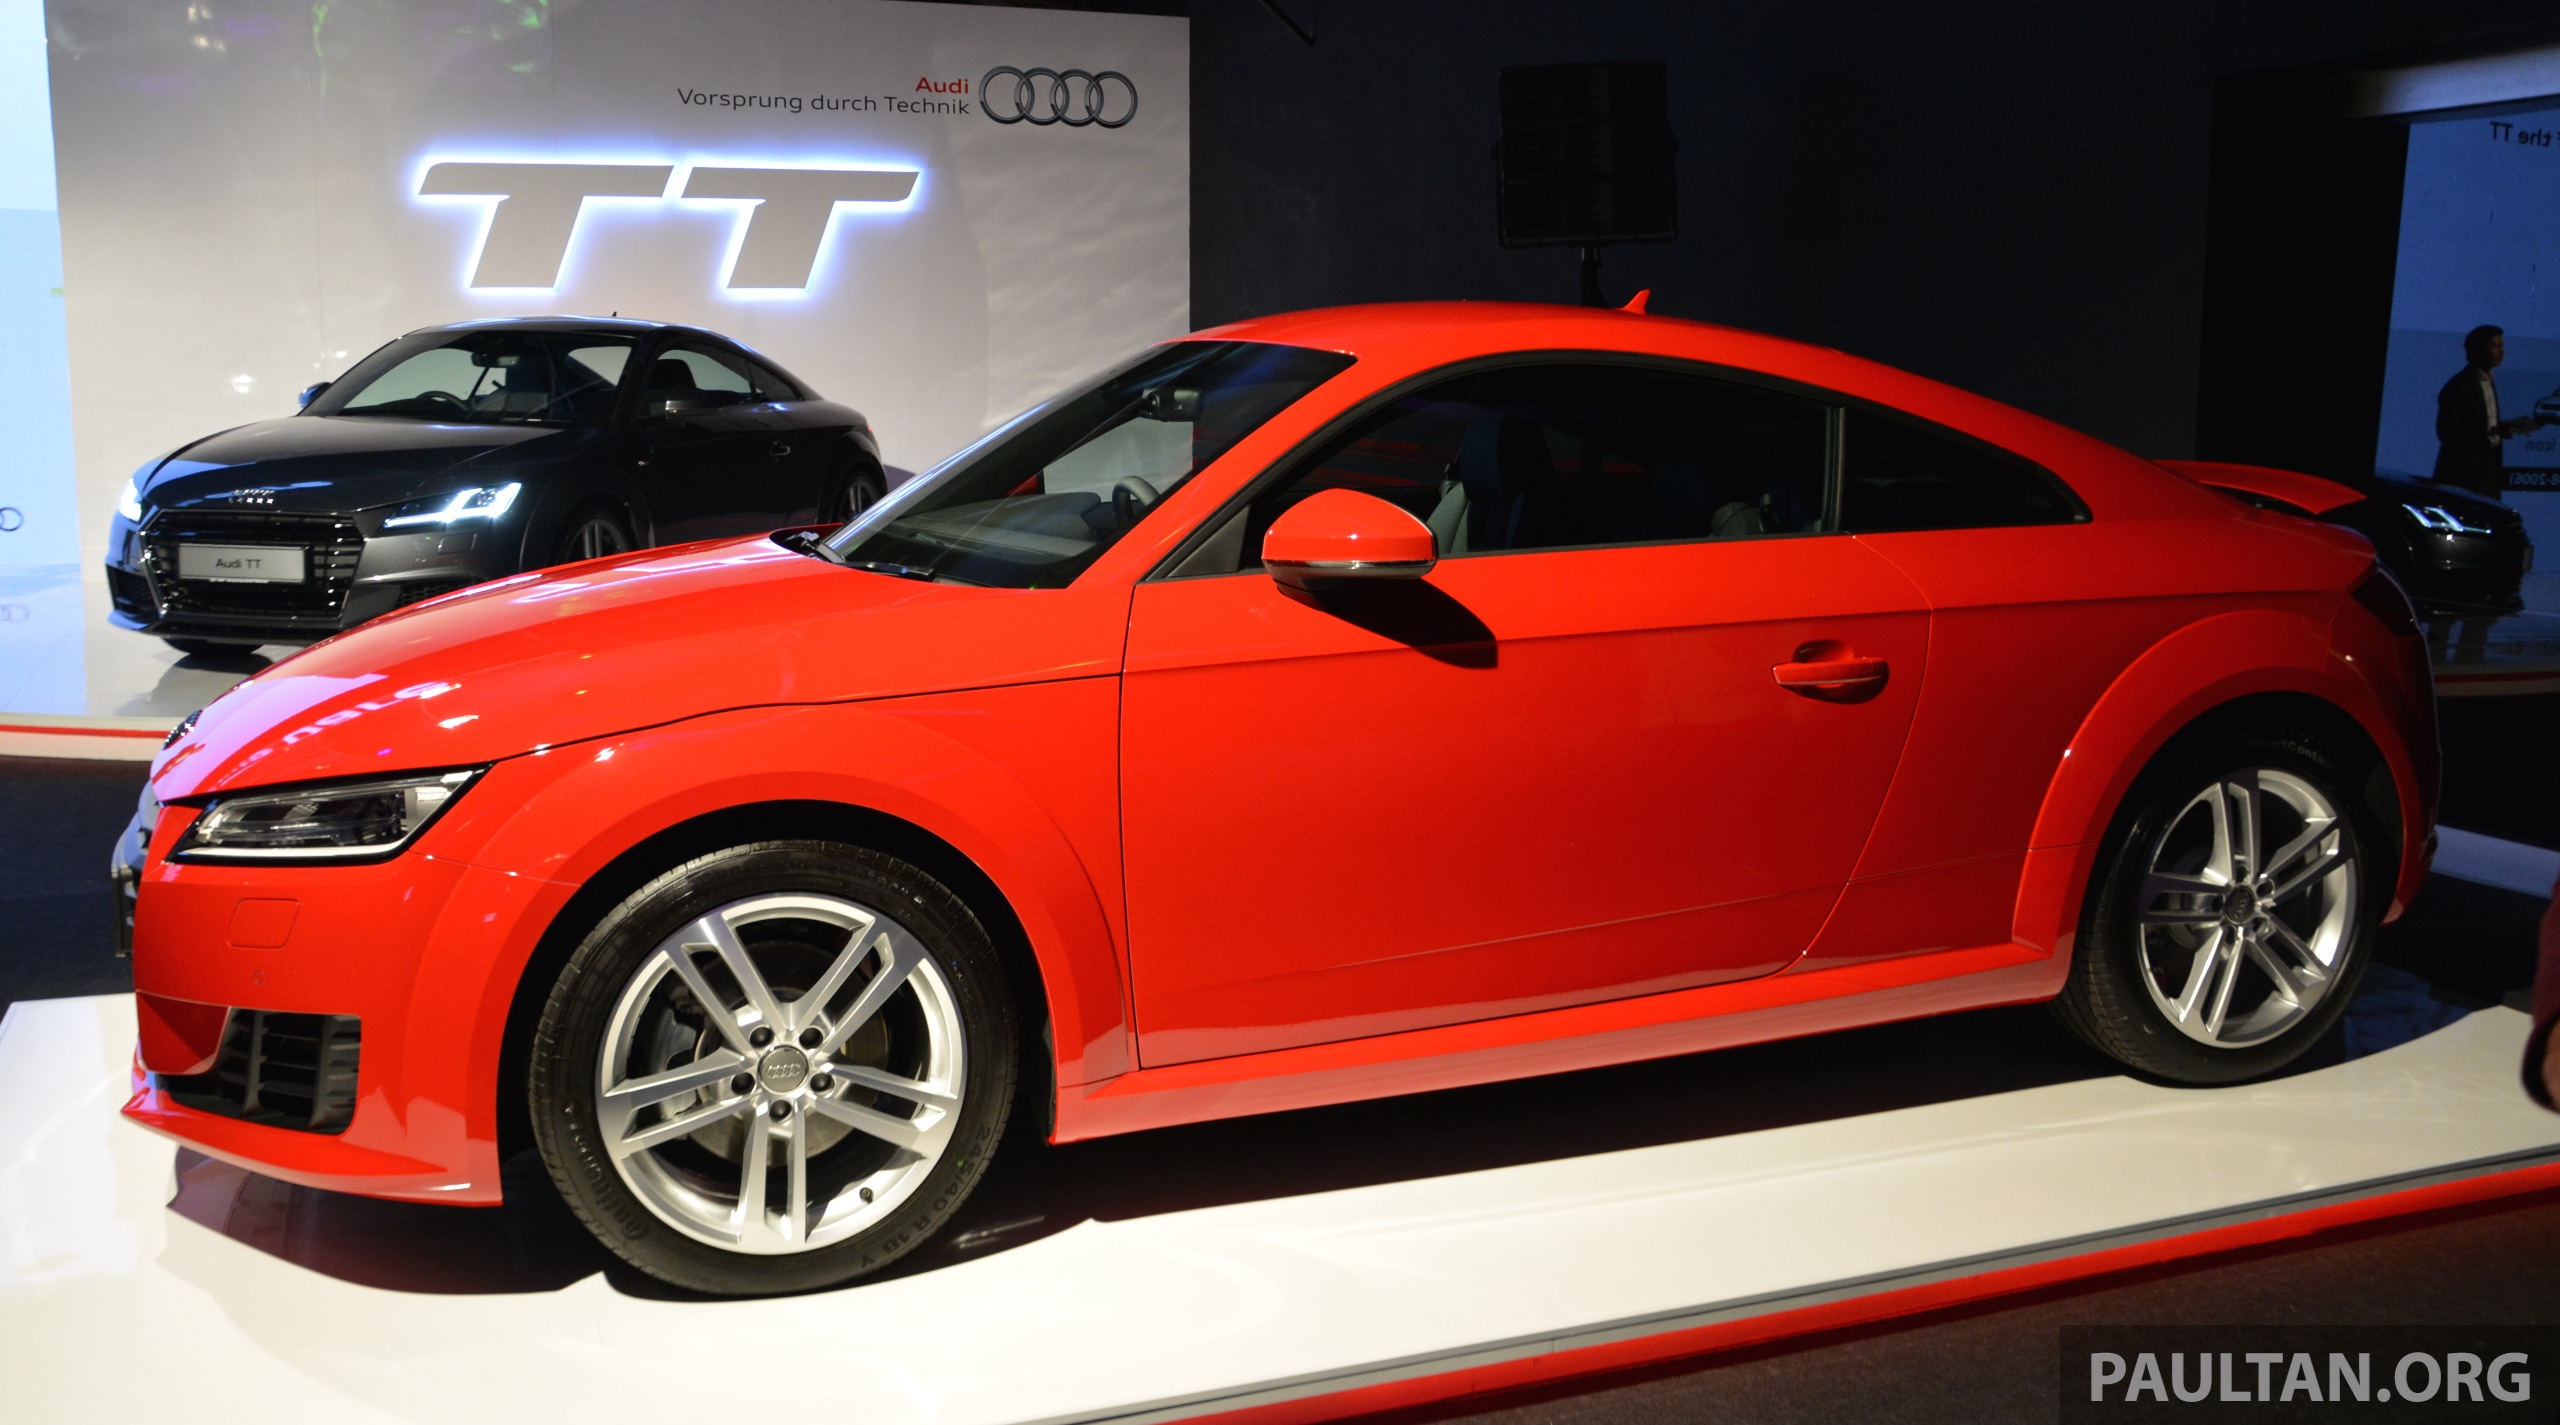 new audi tt launched in malaysia 2 0 tfsi rm285k image 336682. Black Bedroom Furniture Sets. Home Design Ideas